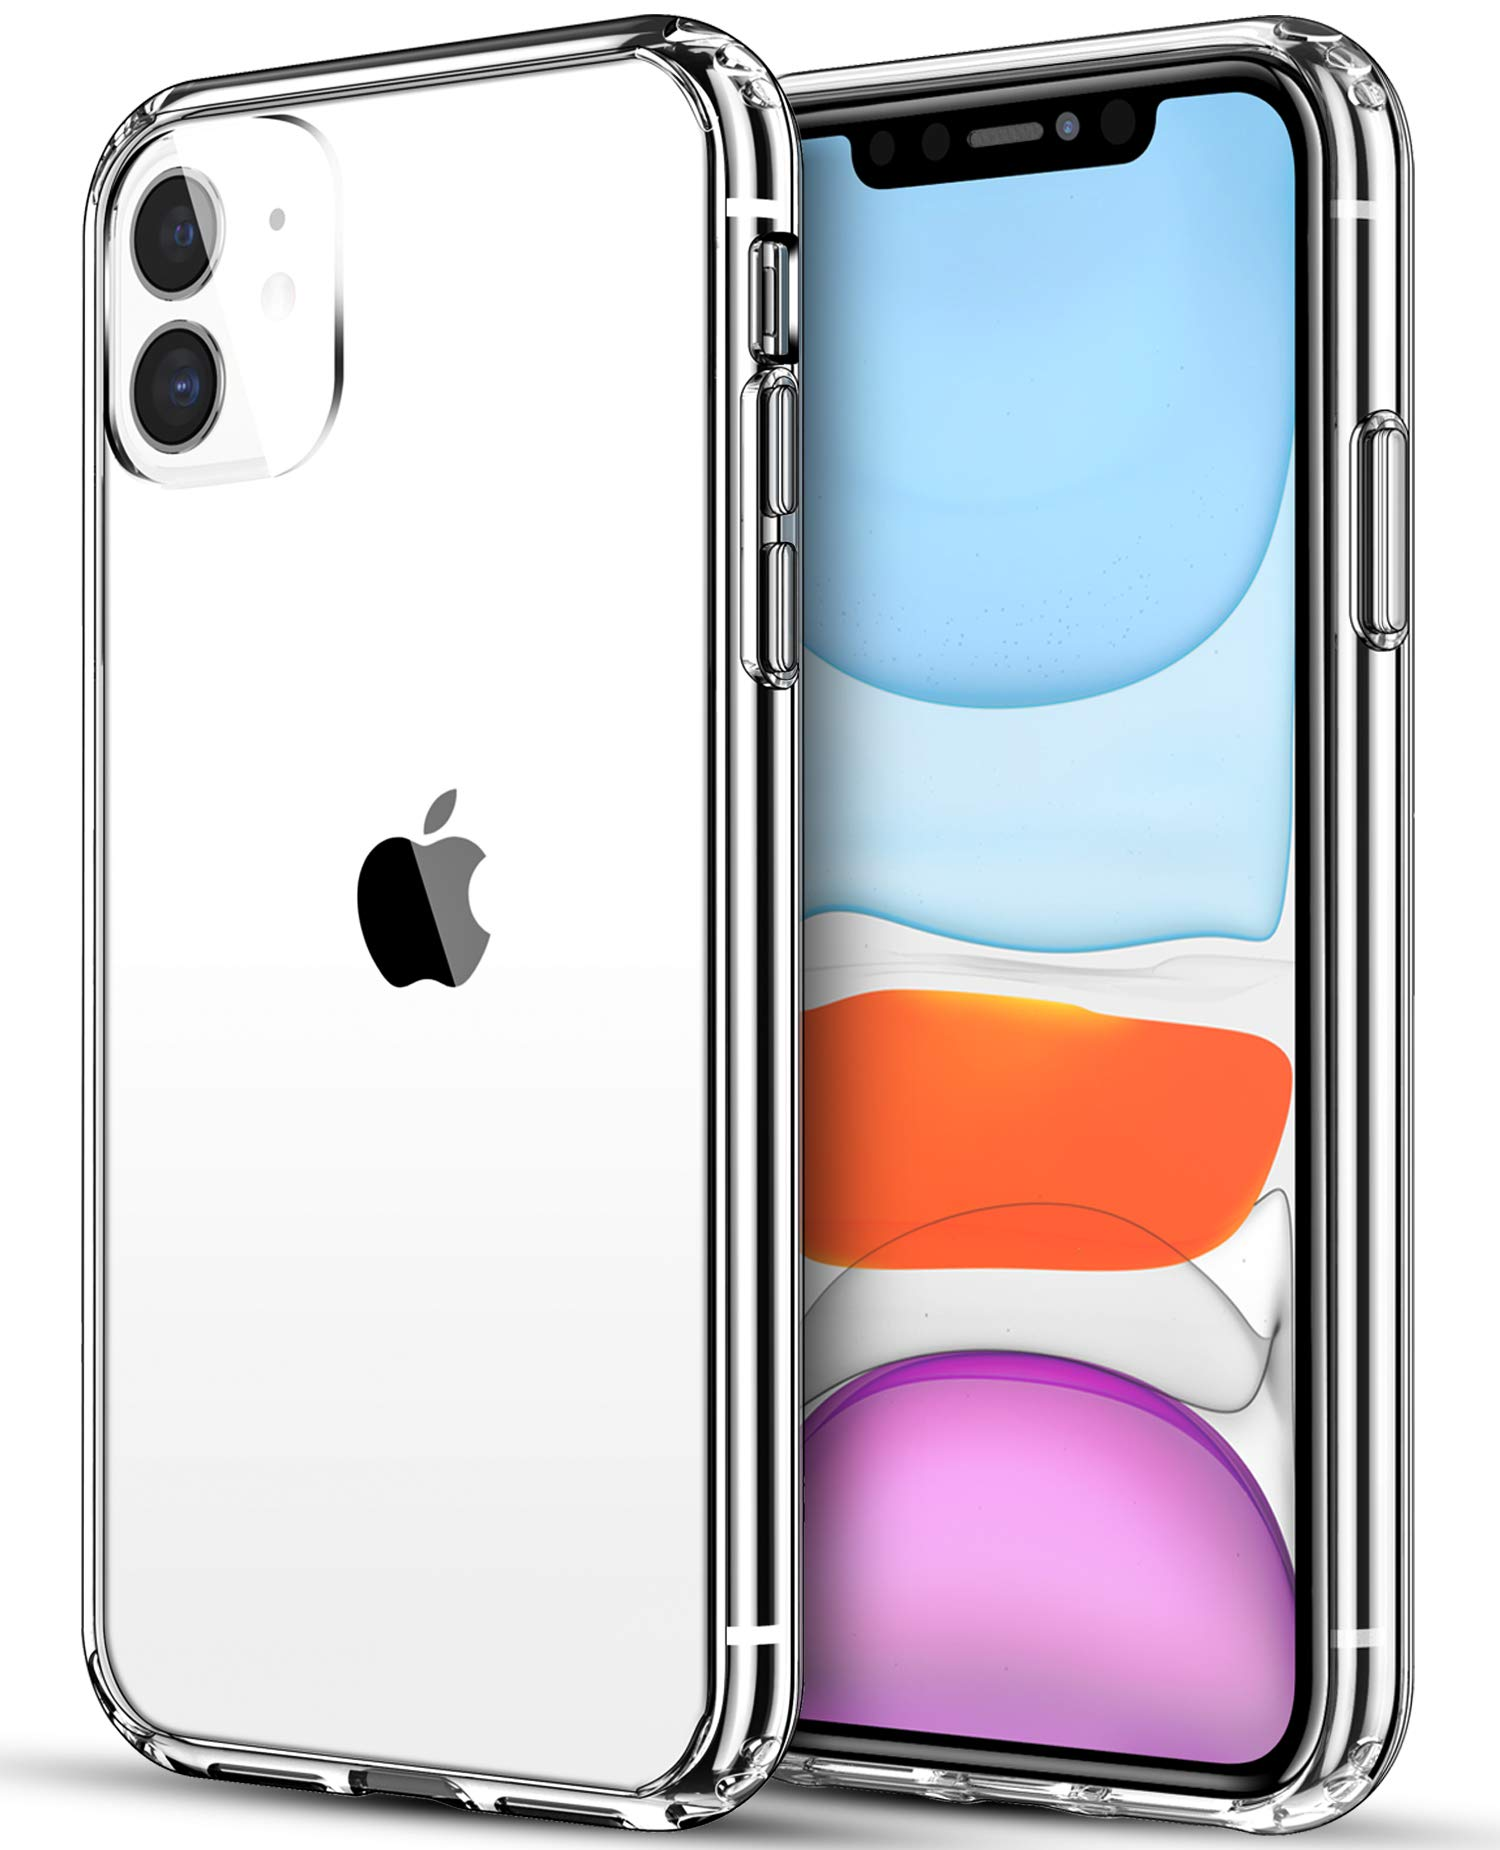 SATLITOG Compatible with iPhone 11 Case (2019), Clear iPhone 11 Cases Cover with Hard PC Back & Soft TPU Bumper for iPhone 11 6.1 Inch